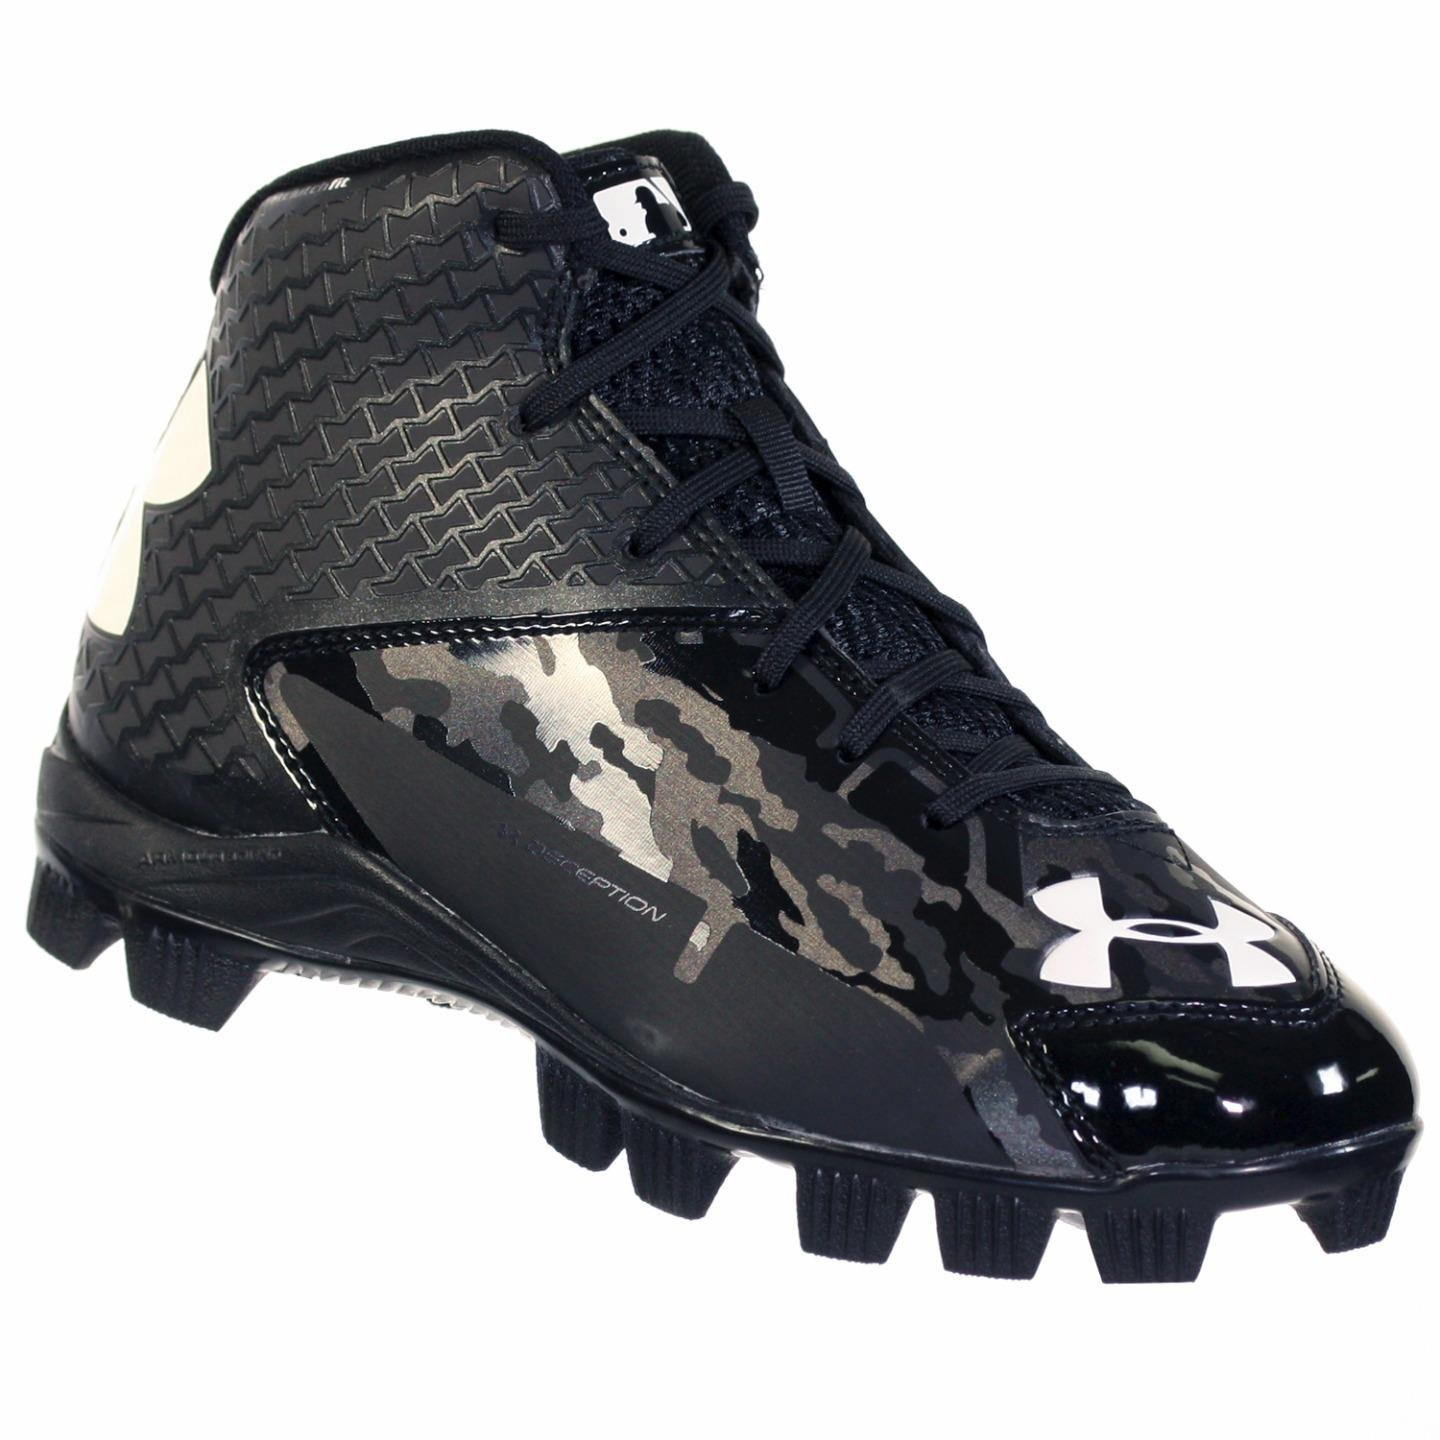 UNDER ARMOUR DECEPTION MID RM JR YOUTH BASEBALL CLEATS BLK / BLK